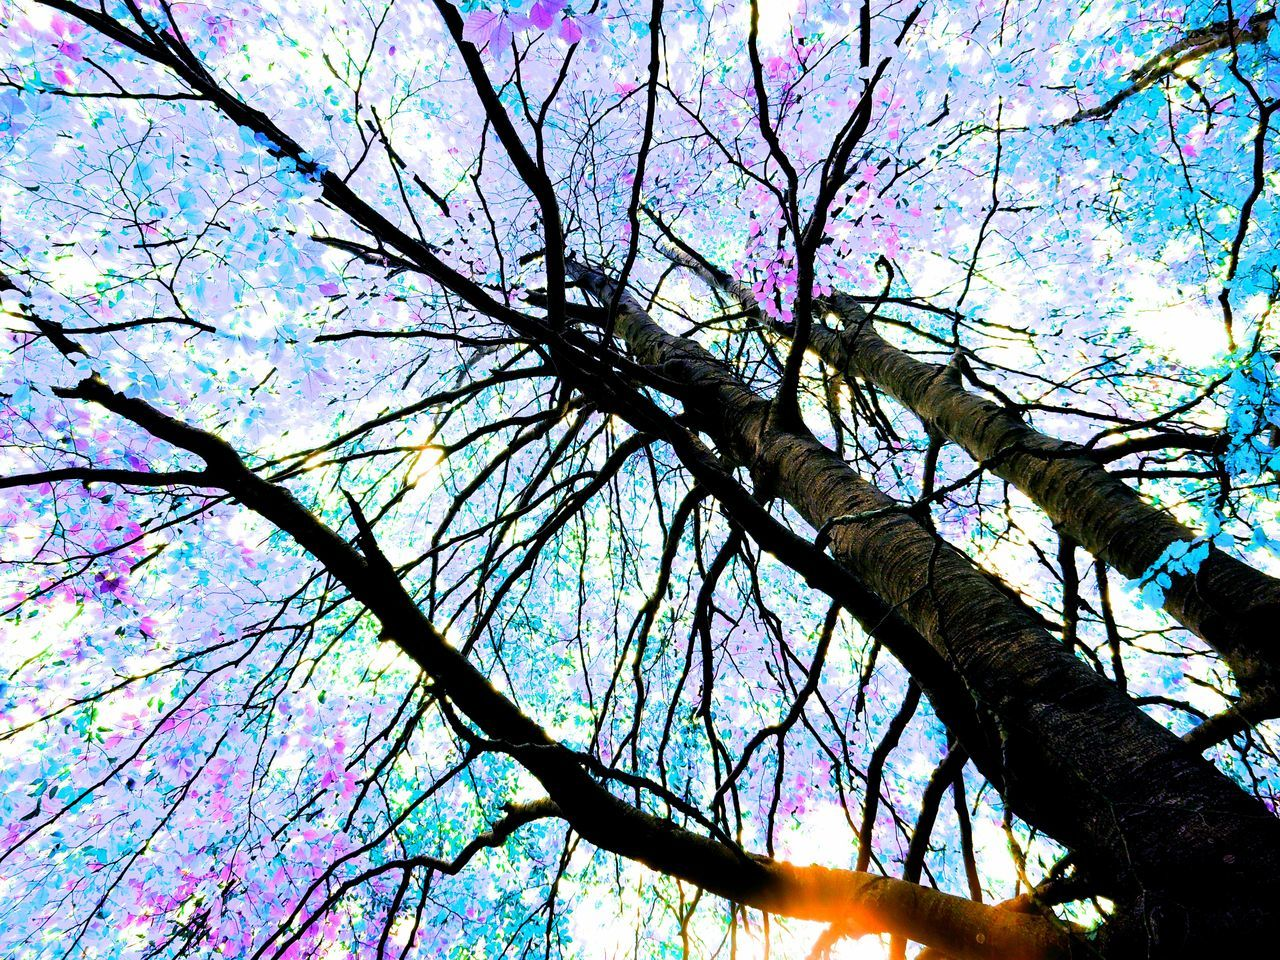 Beauty In Nature Branch Day Growth Low Angle View Nature No People Outdoors Sky Tree Autumn🍁🍁🍁 Autumn Autumn Colours Autumn Colors Leafscape EyeEm Eyemphotography Treescollection Trees And Plants  Autumn 2016 Autumnbeauty Eyem Eyem Gallery Eyeemphotography Fresh On Eyeem